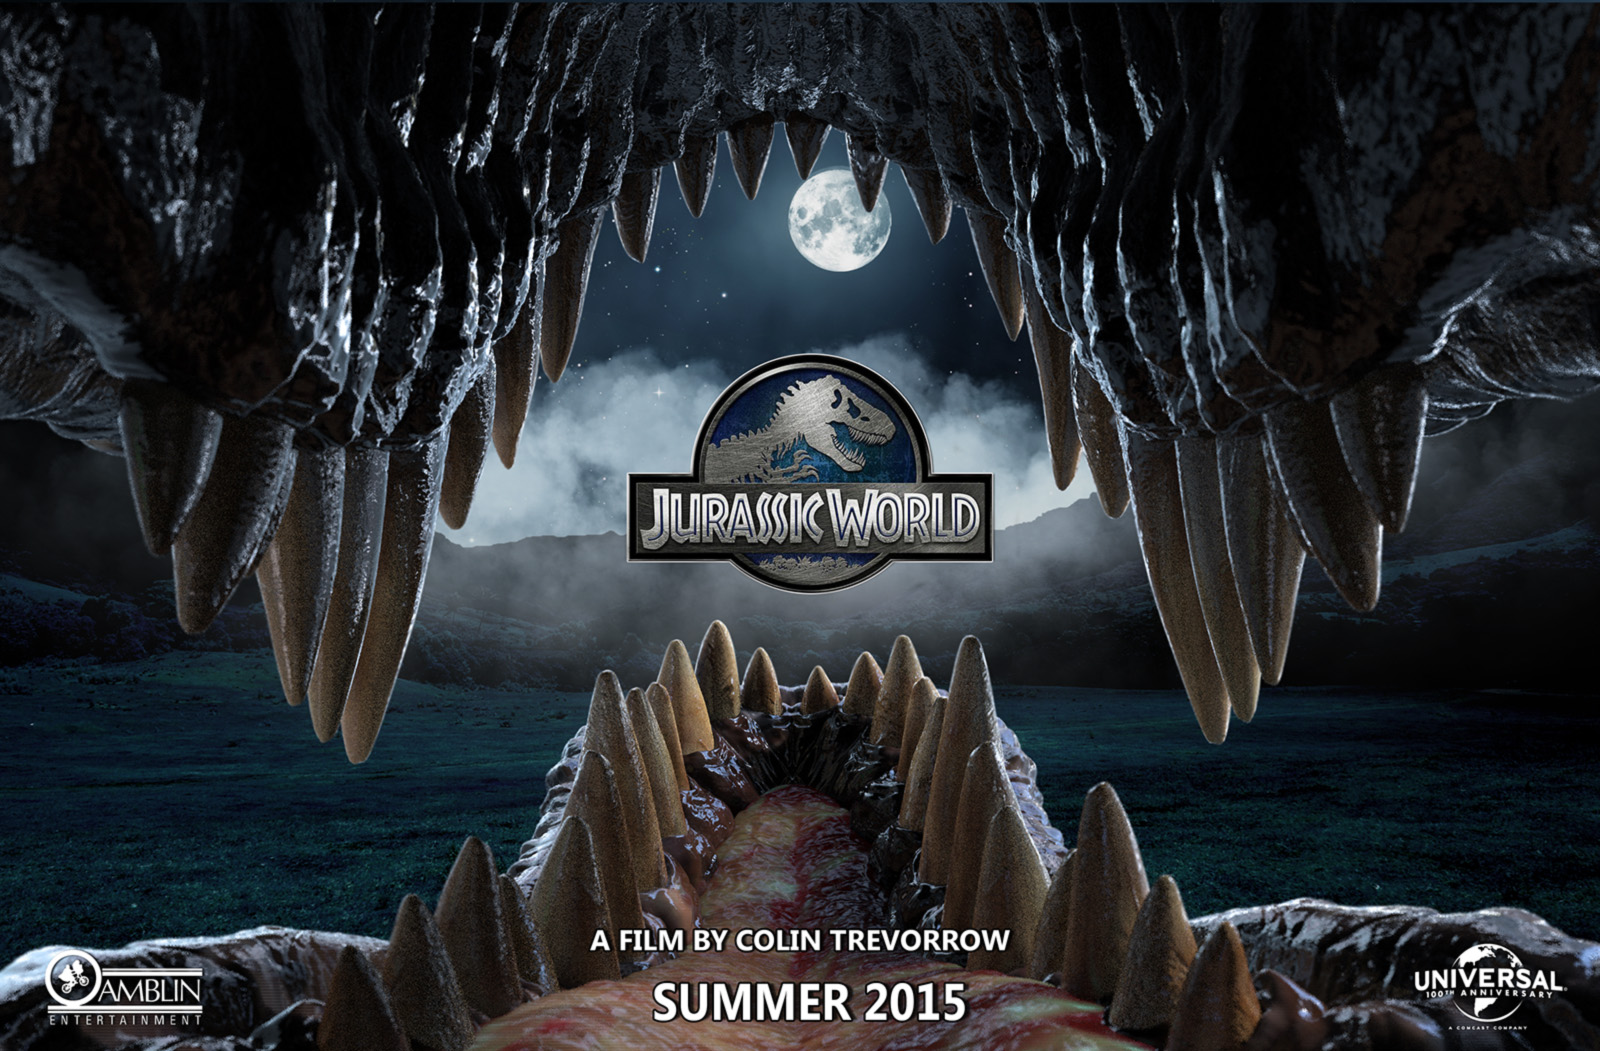 UPDATED: Jurassic World Releases First Trailer For New Movie